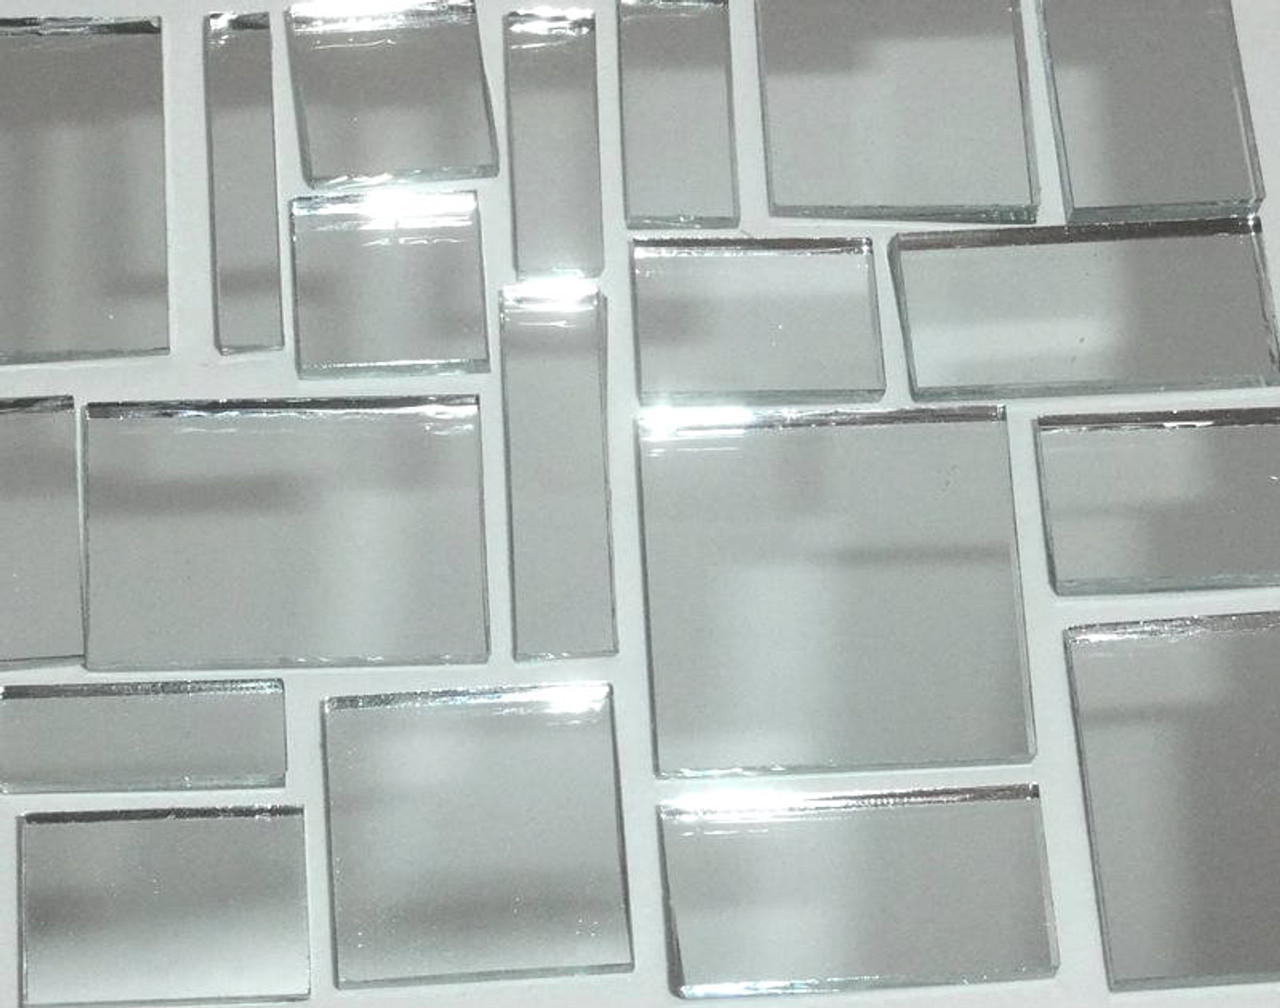 HUGE SALE:  DISCO BALL SILVER MIRROR JUMBLED MIX - 2 lbs for the price of 1